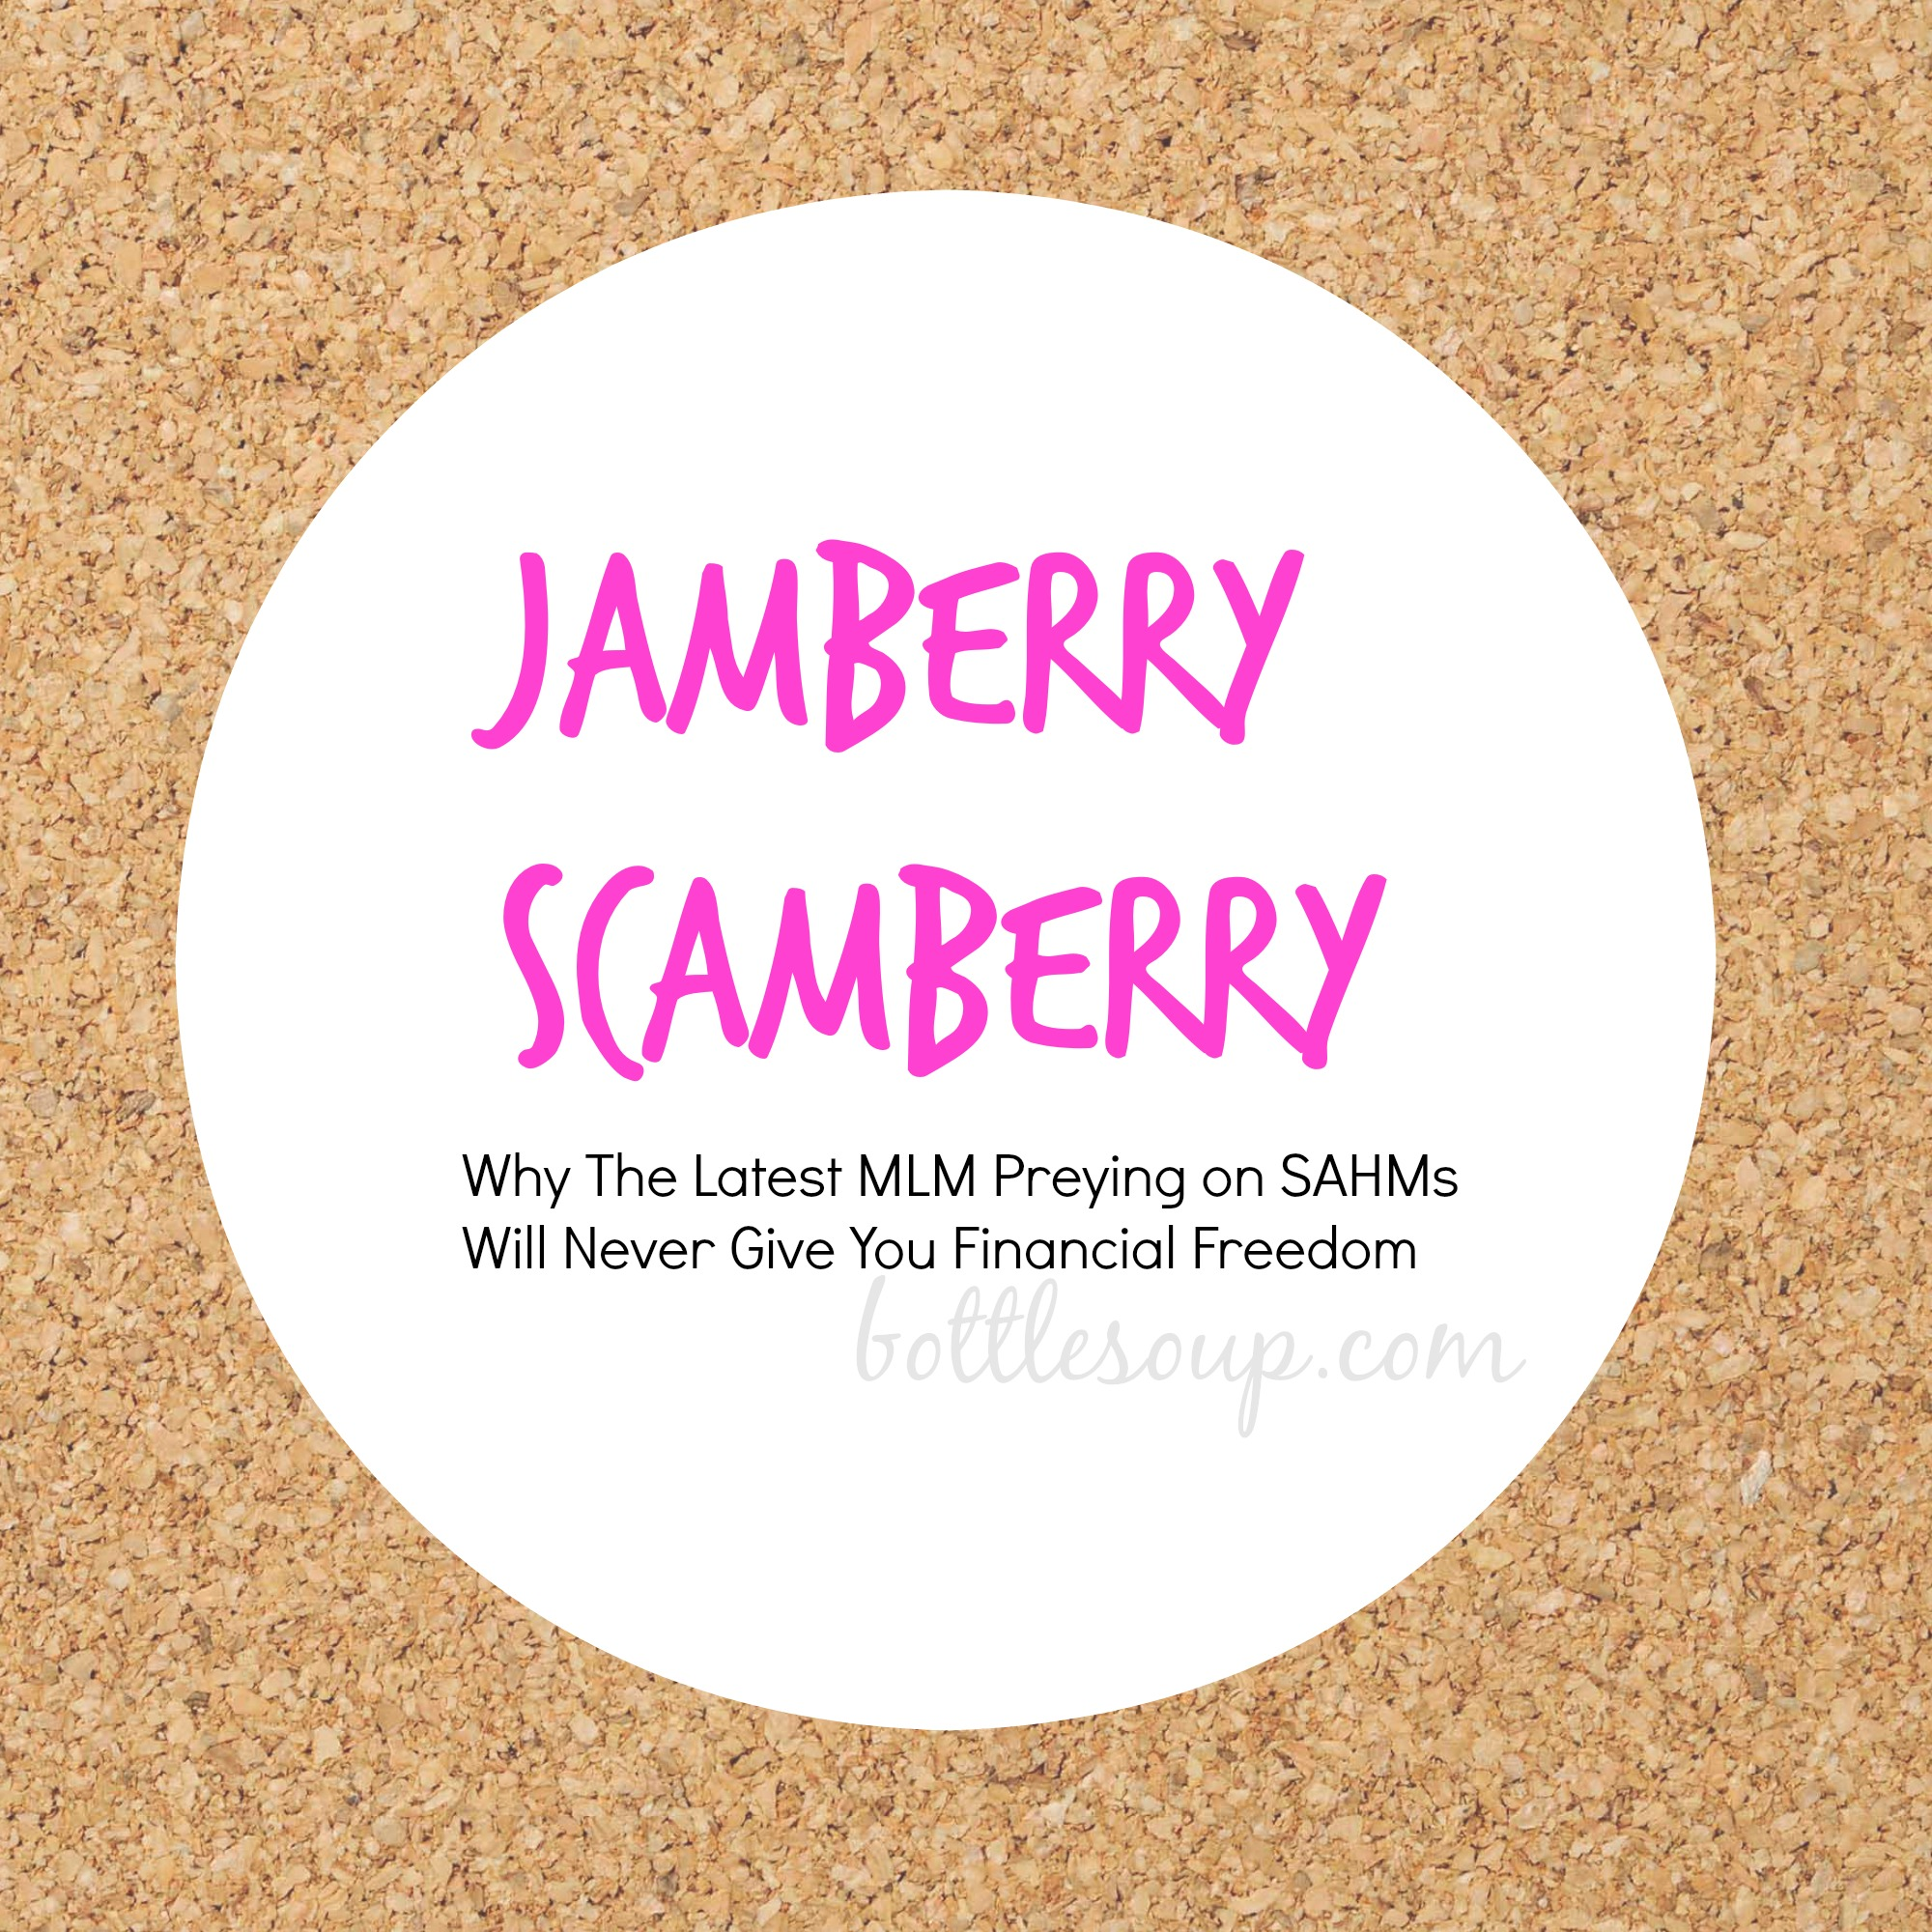 Jamberry Scamberry: Why The Latest MLM Preying on SAHMs Will Never ...